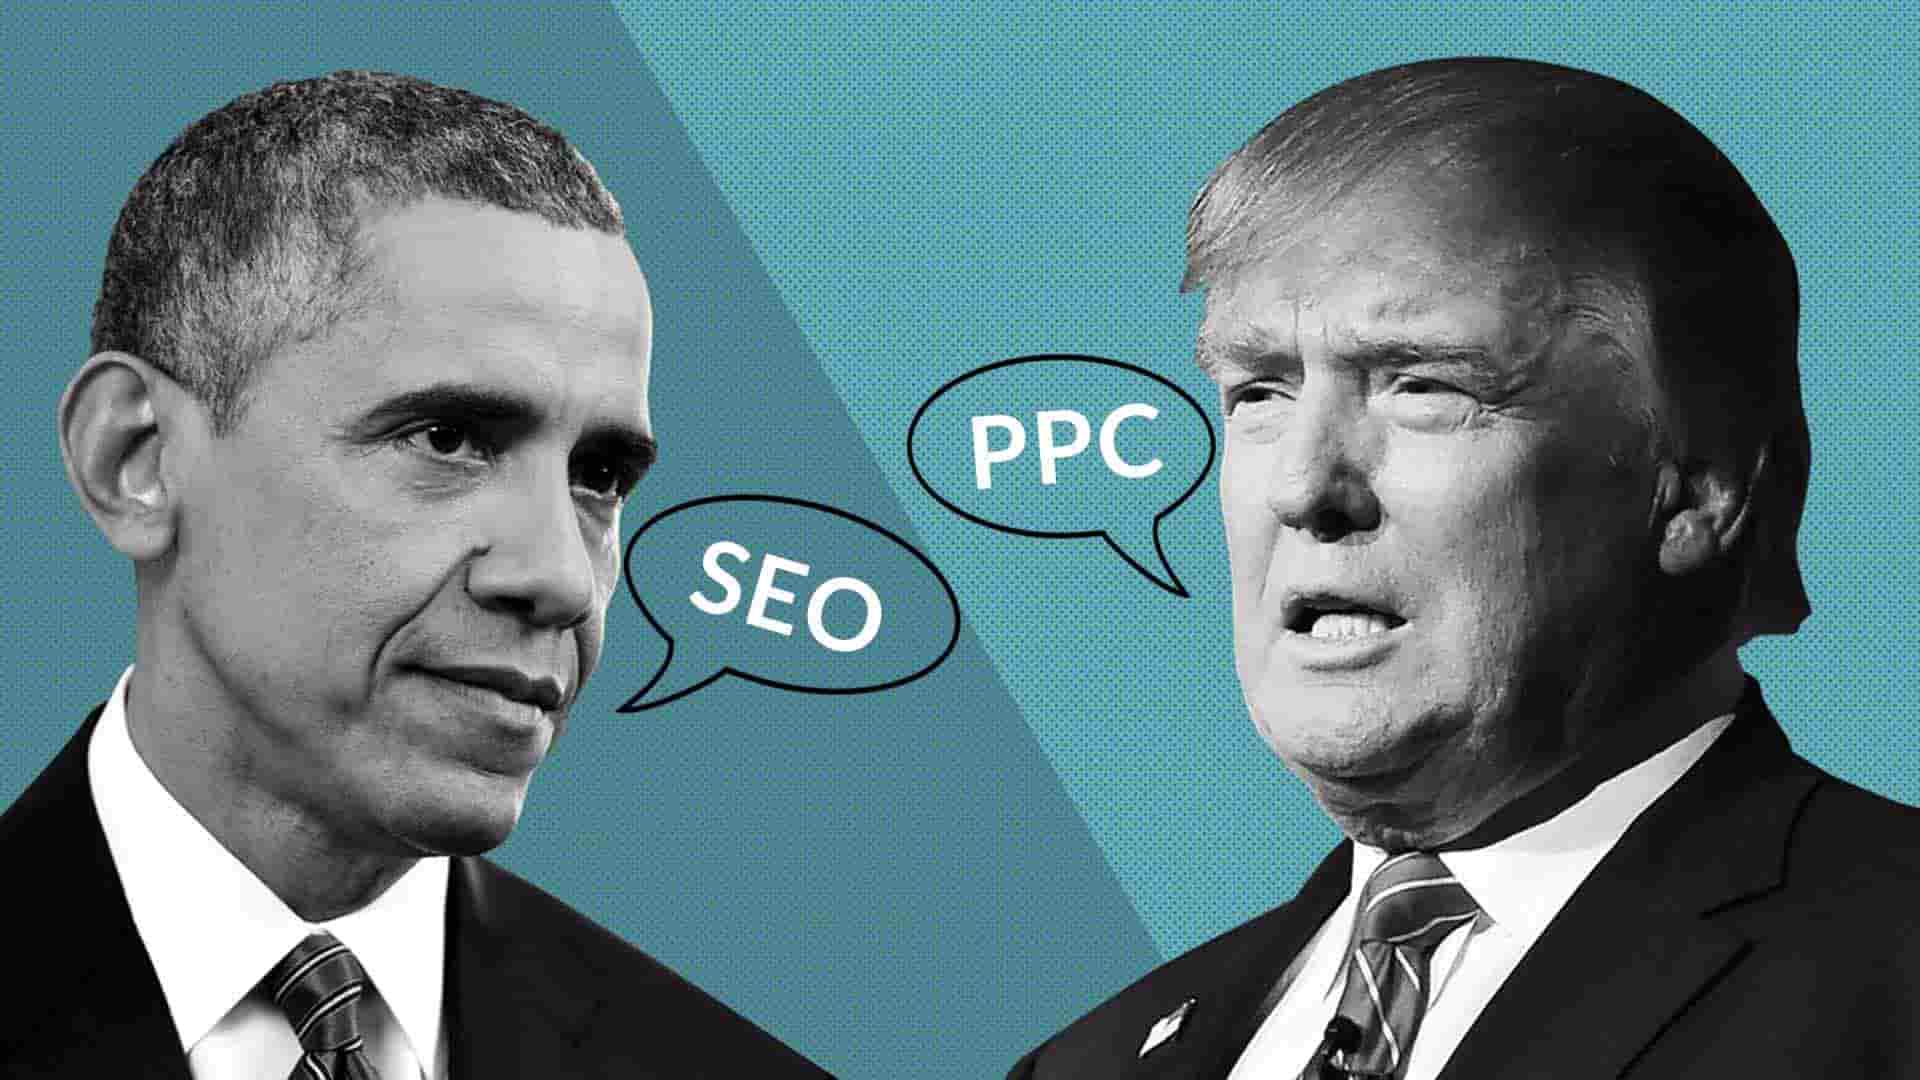 A Fight Between Search Engine Optimization (SEO) and Pay Per Click (PPC)